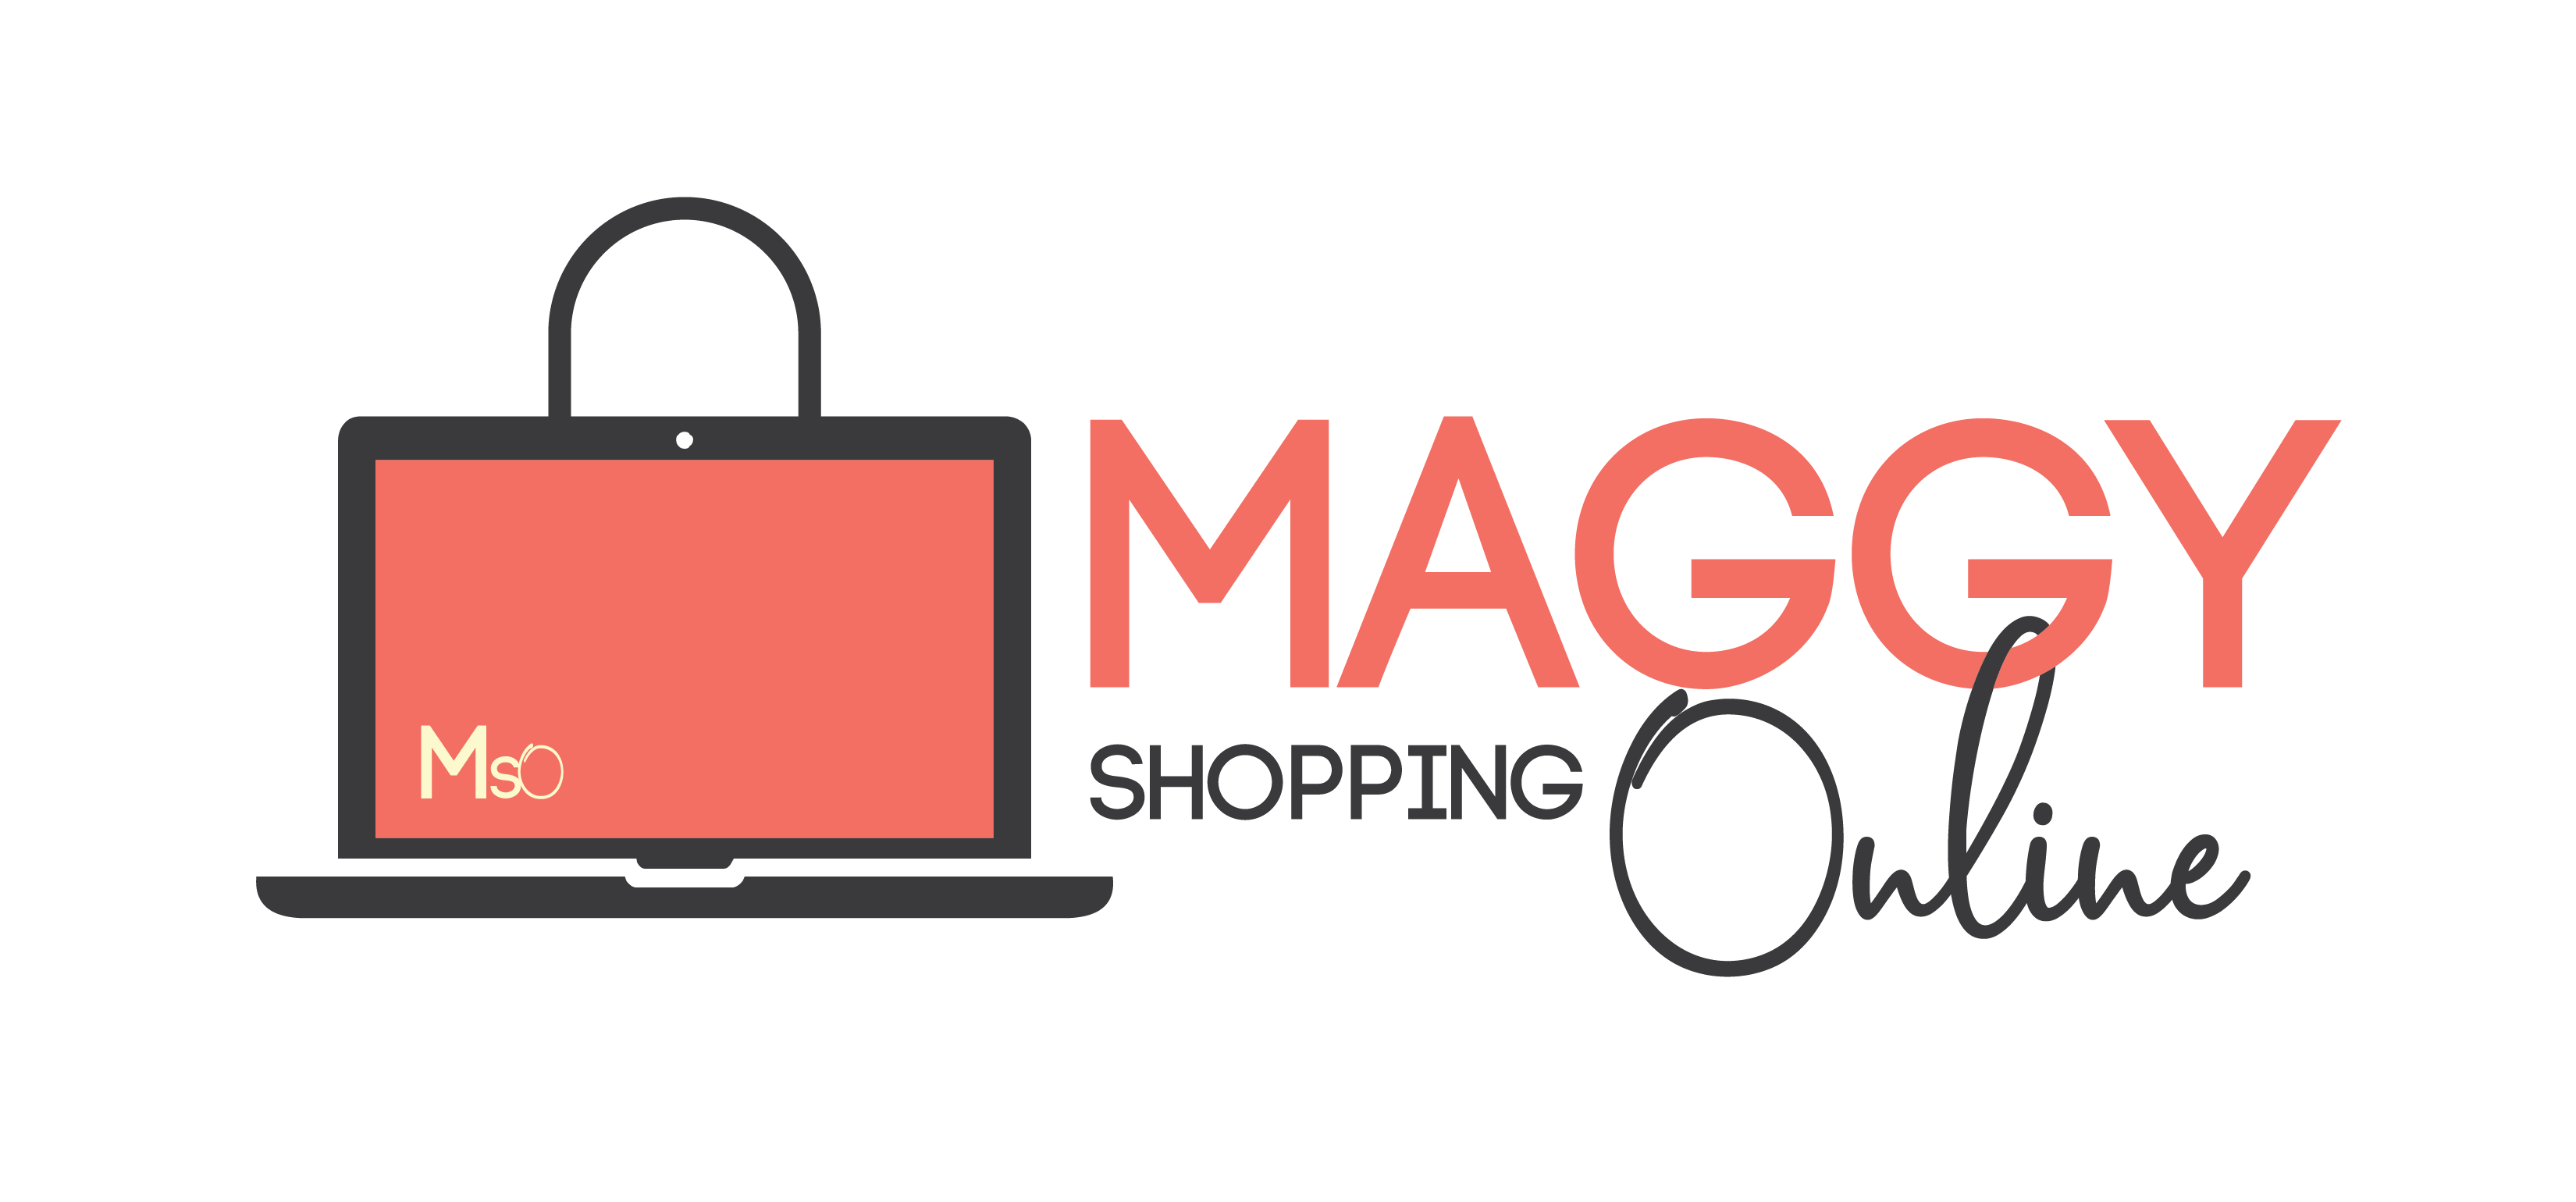 Maggy Shopping Online